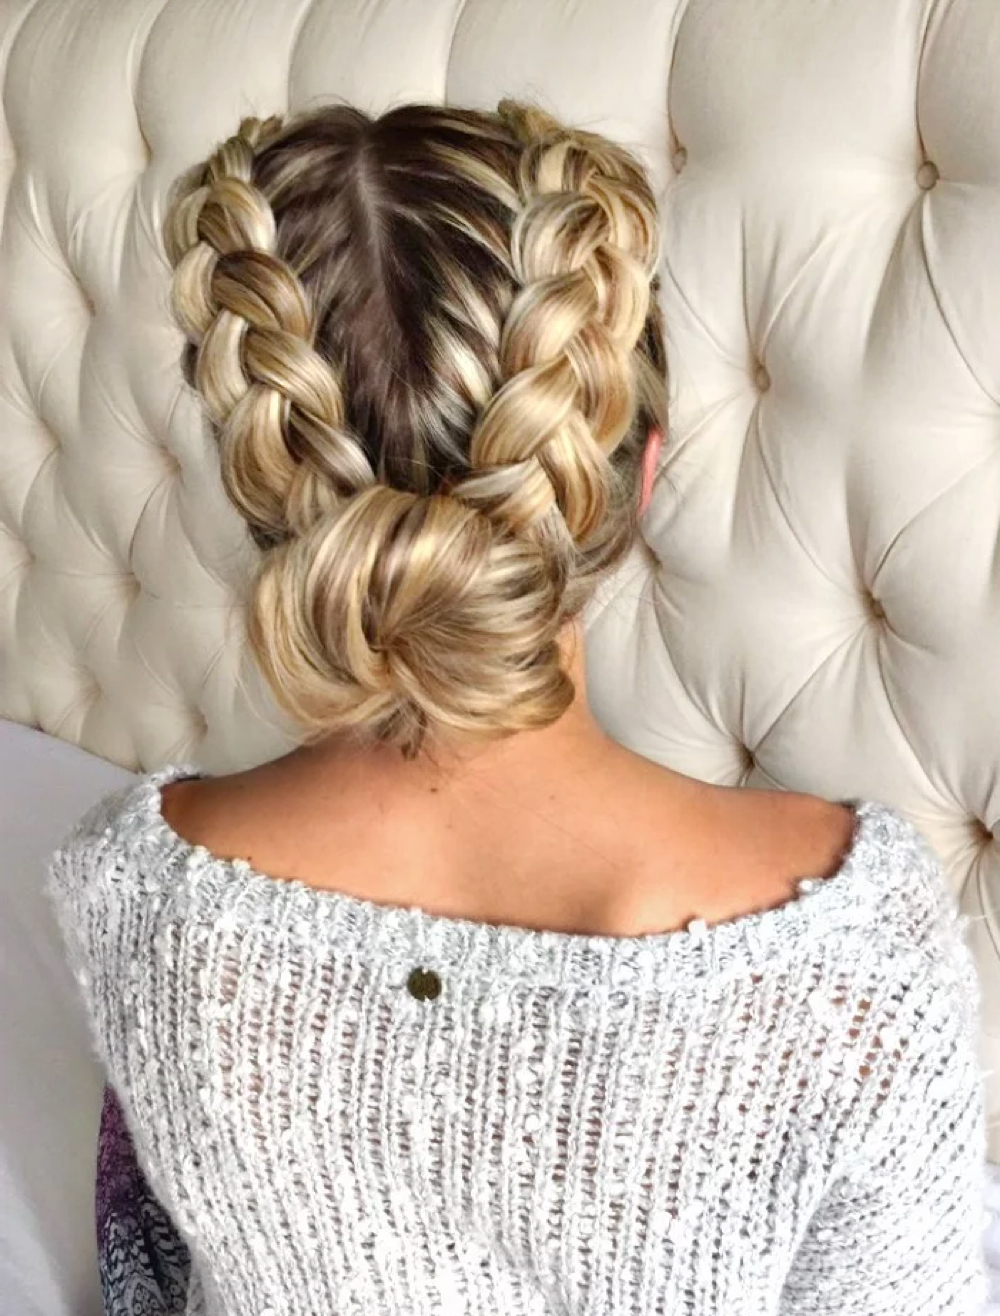 29 Gorgeous Braided Updo Ideas For 2019 Pertaining To Most Up To Date Messy Crown Braid Updo Hairstyles (View 14 of 20)